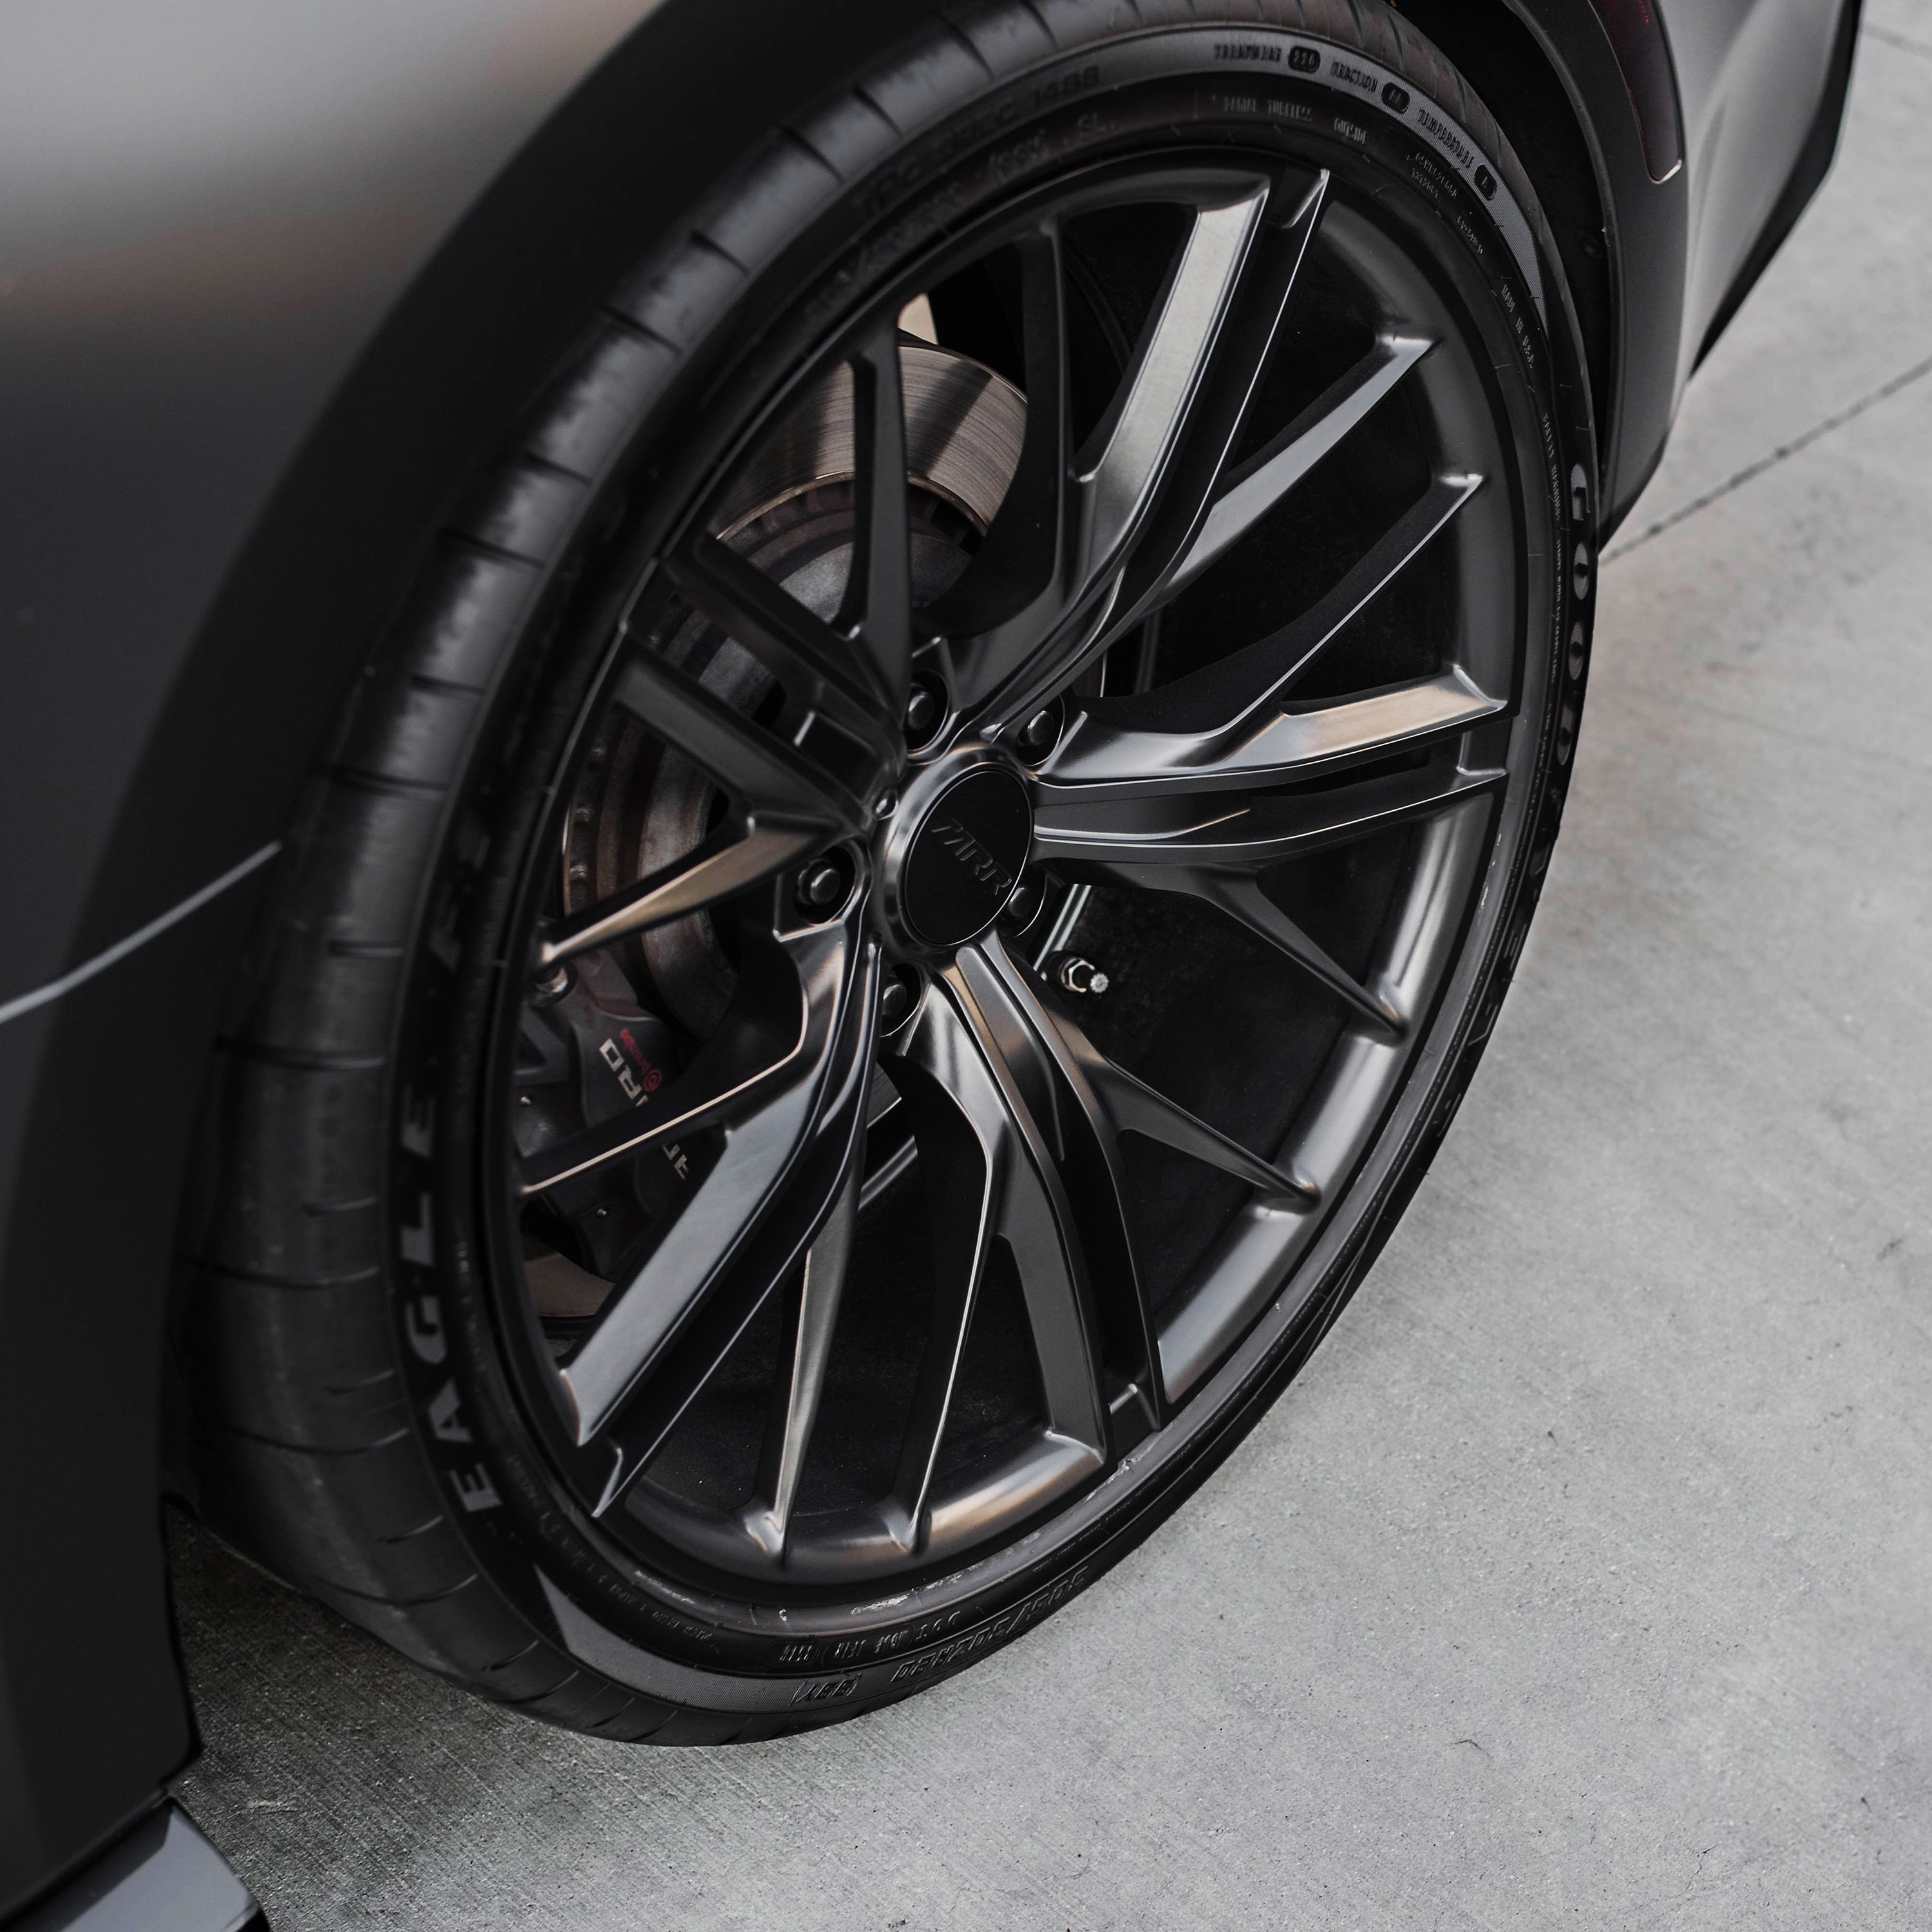 new the oem sti right studio cars chevrolet wheels rear now looking get factory can you best